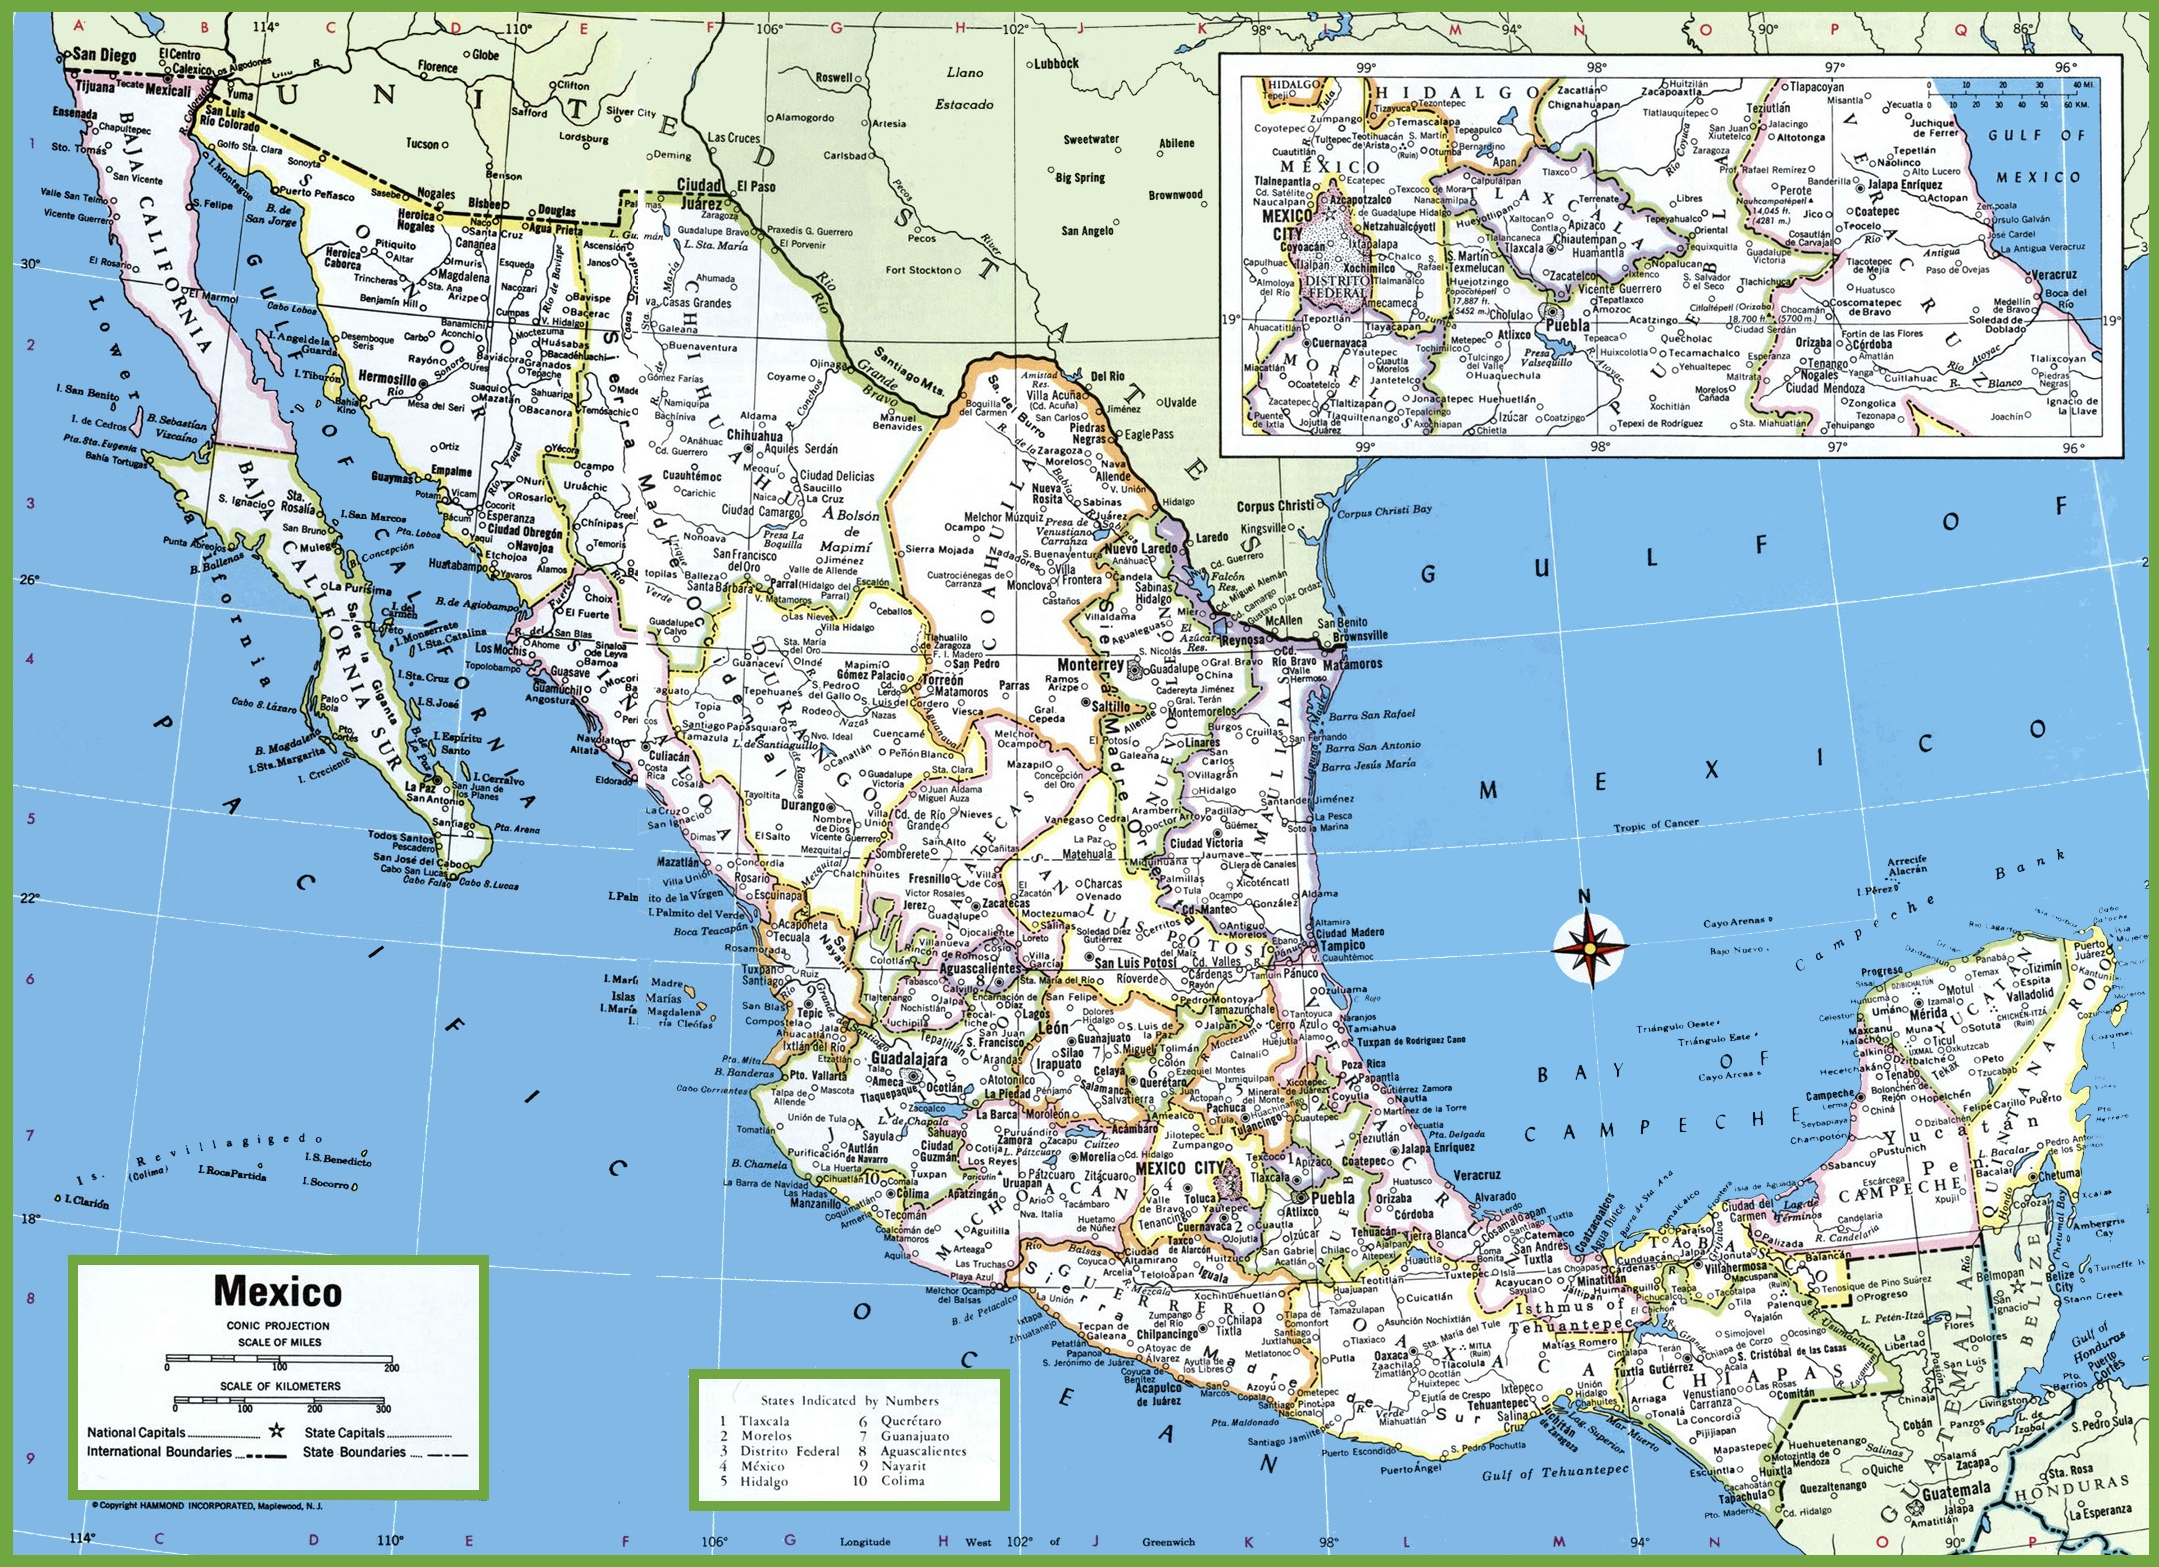 Large Detailed Map Of Mexico With Cities And Towns - A map of mexico